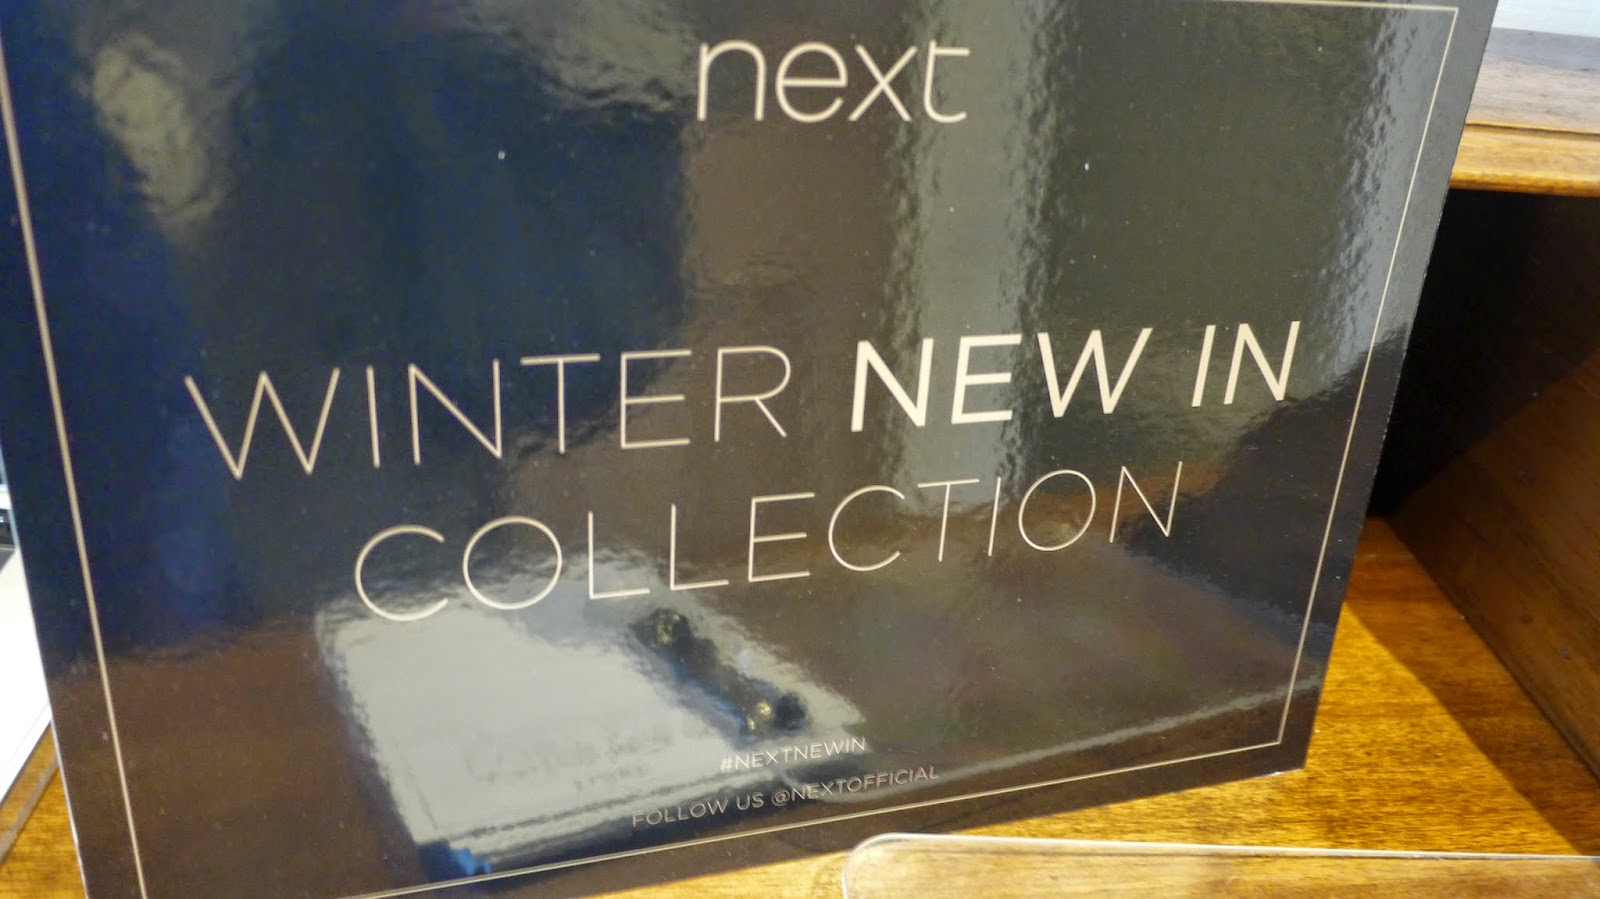 Next New In Winter Collection 2014